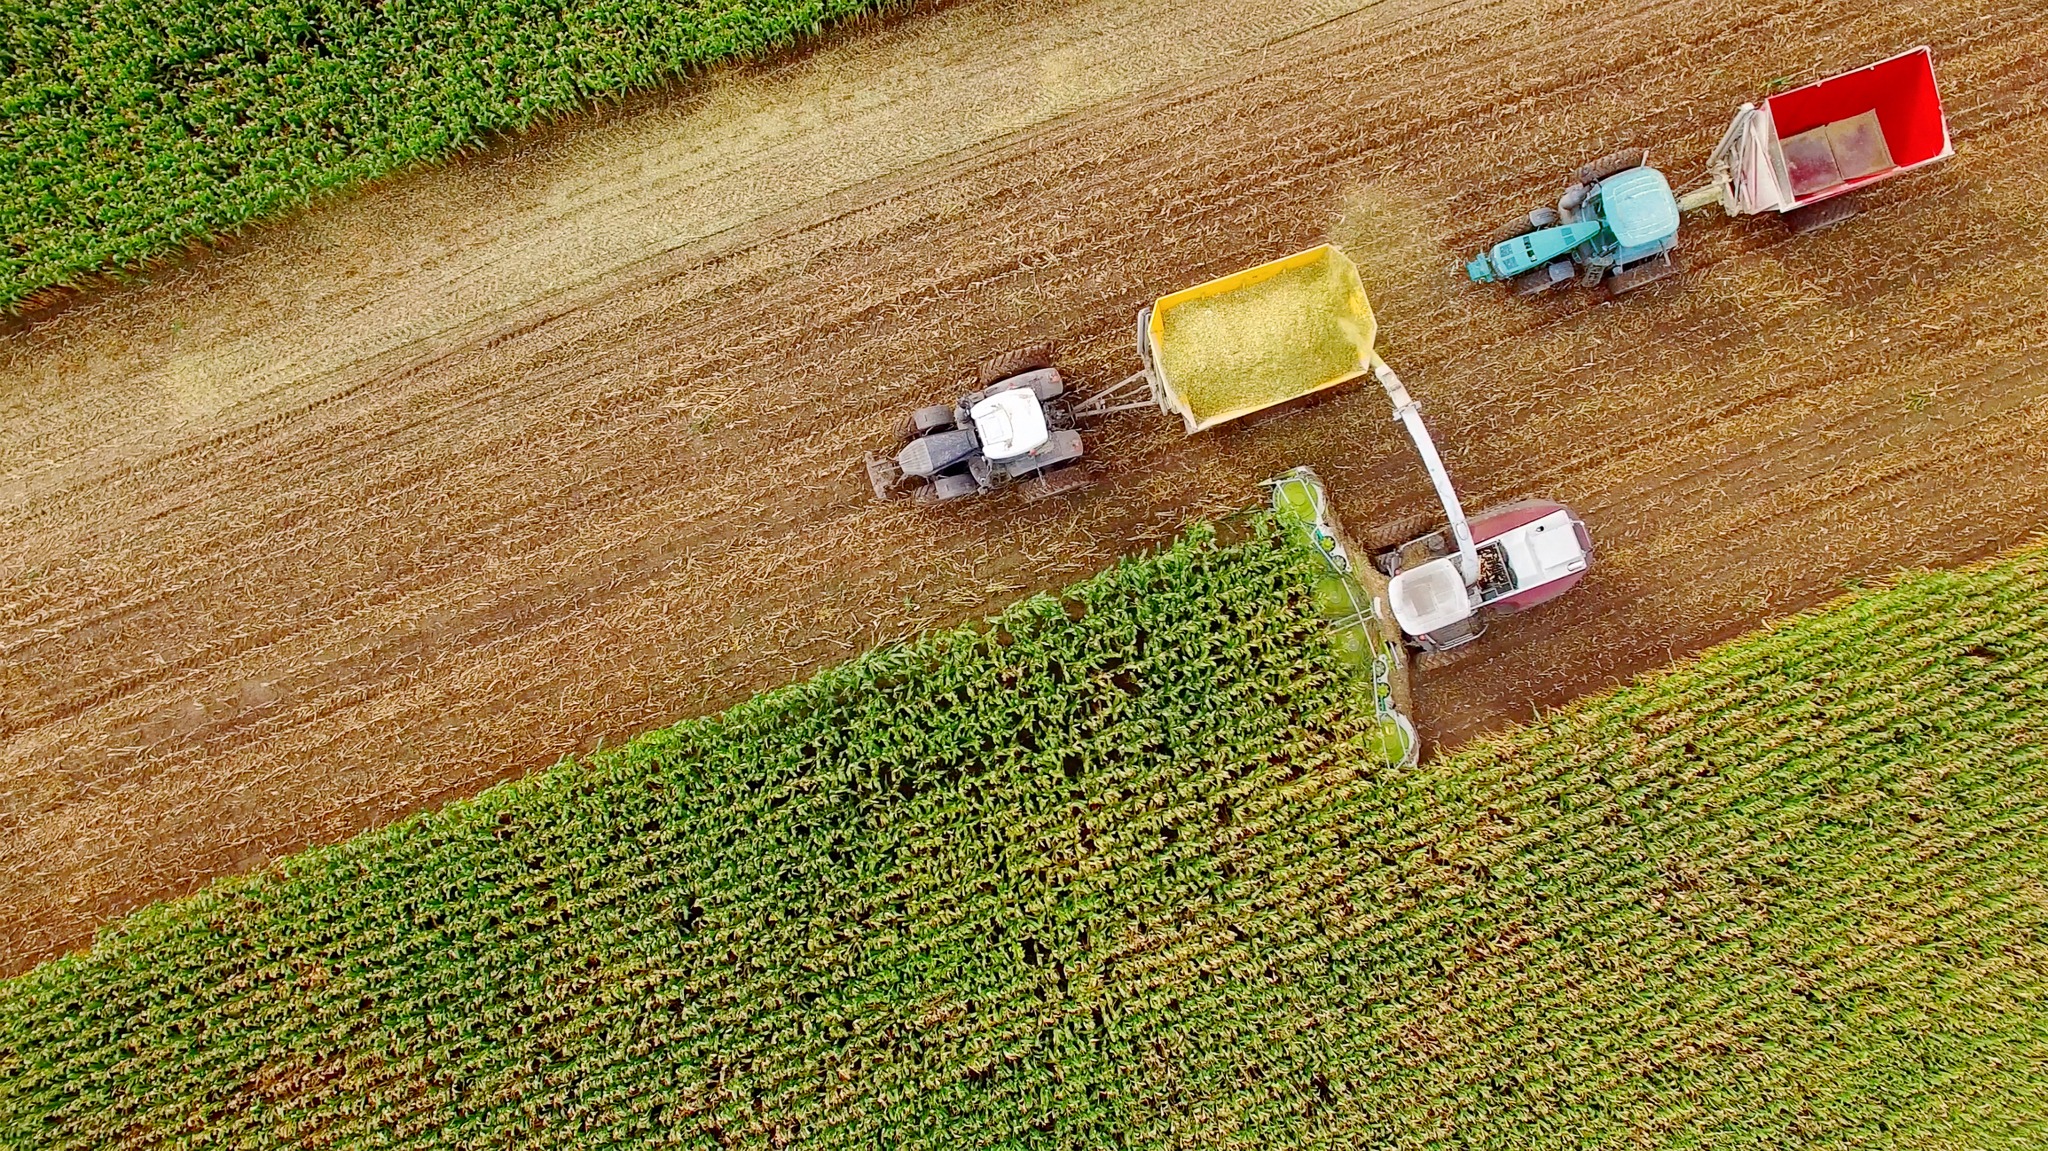 Aerial view of farm machines harvesting crops. Photo by James Brey.